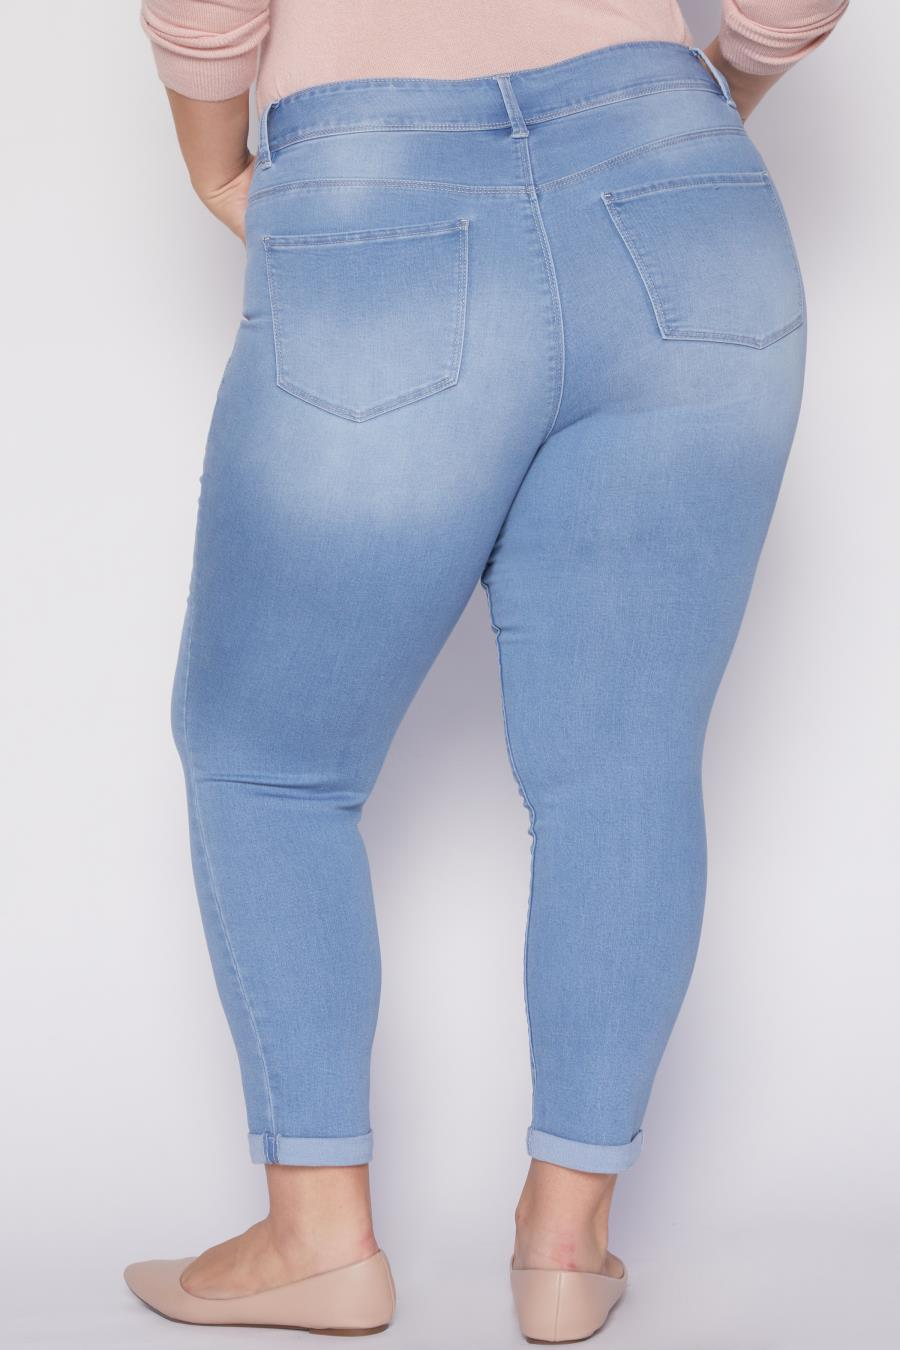 Women Plus Size Hide Your Muffin Top Rolled Cuff Ankle Jeans